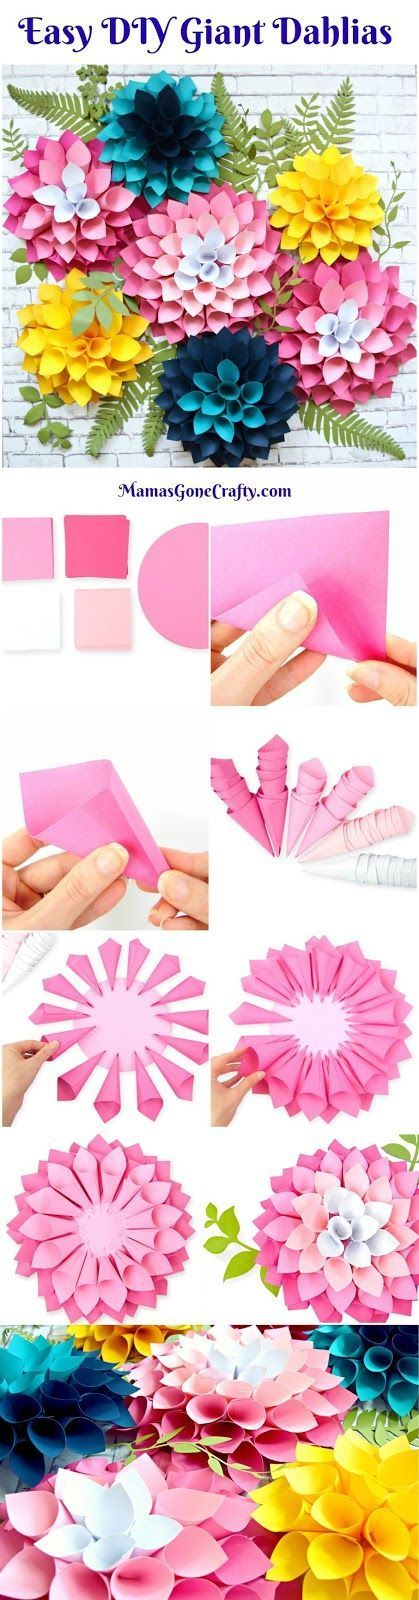 20 Artistic Paper Flower DIY Initiatives for Your House Ornament